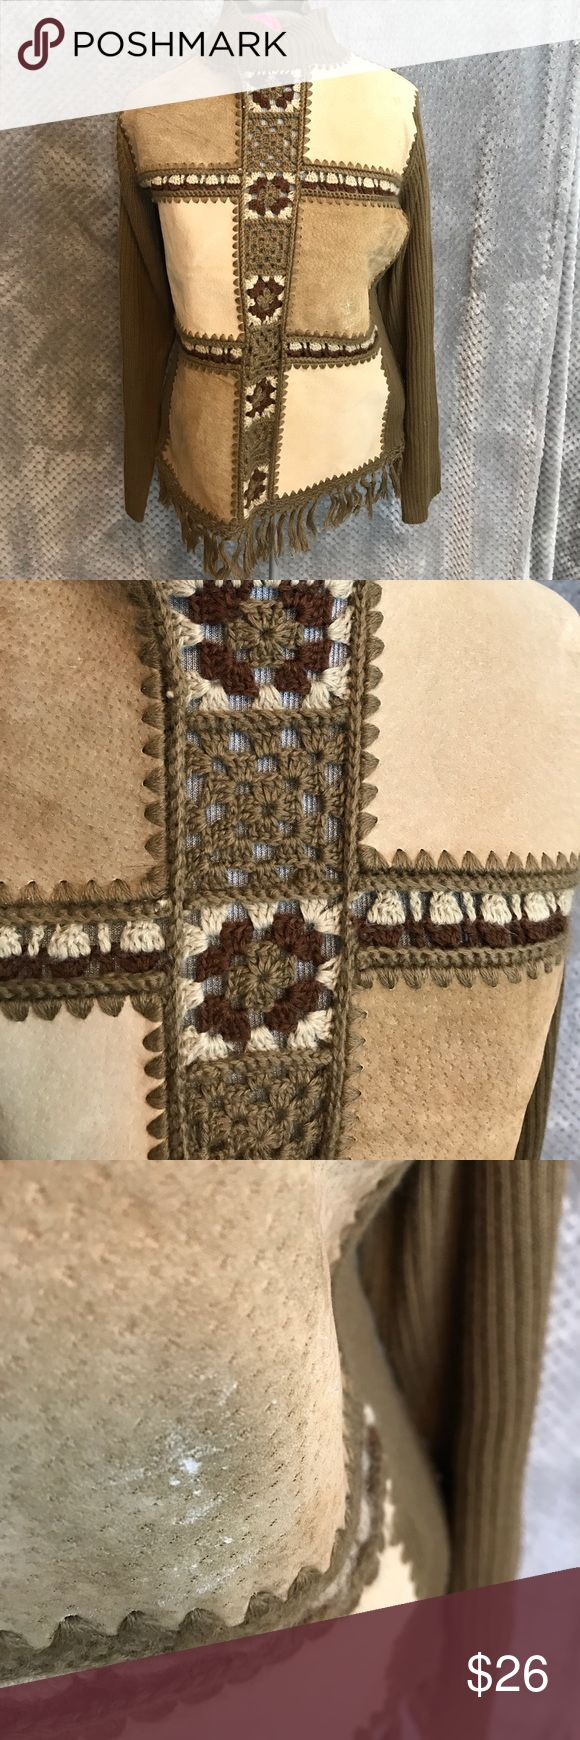 """Gizel crochet suede turtleneck sweater boho Awesome retro look sweater. Granny square crochet with sided sections. One section has a spot on it as noted in pic. Fringe around the bottom. Bust 18"""". Length 21"""". Boho! gizel Sweaters Cowl & Turtlenecks"""